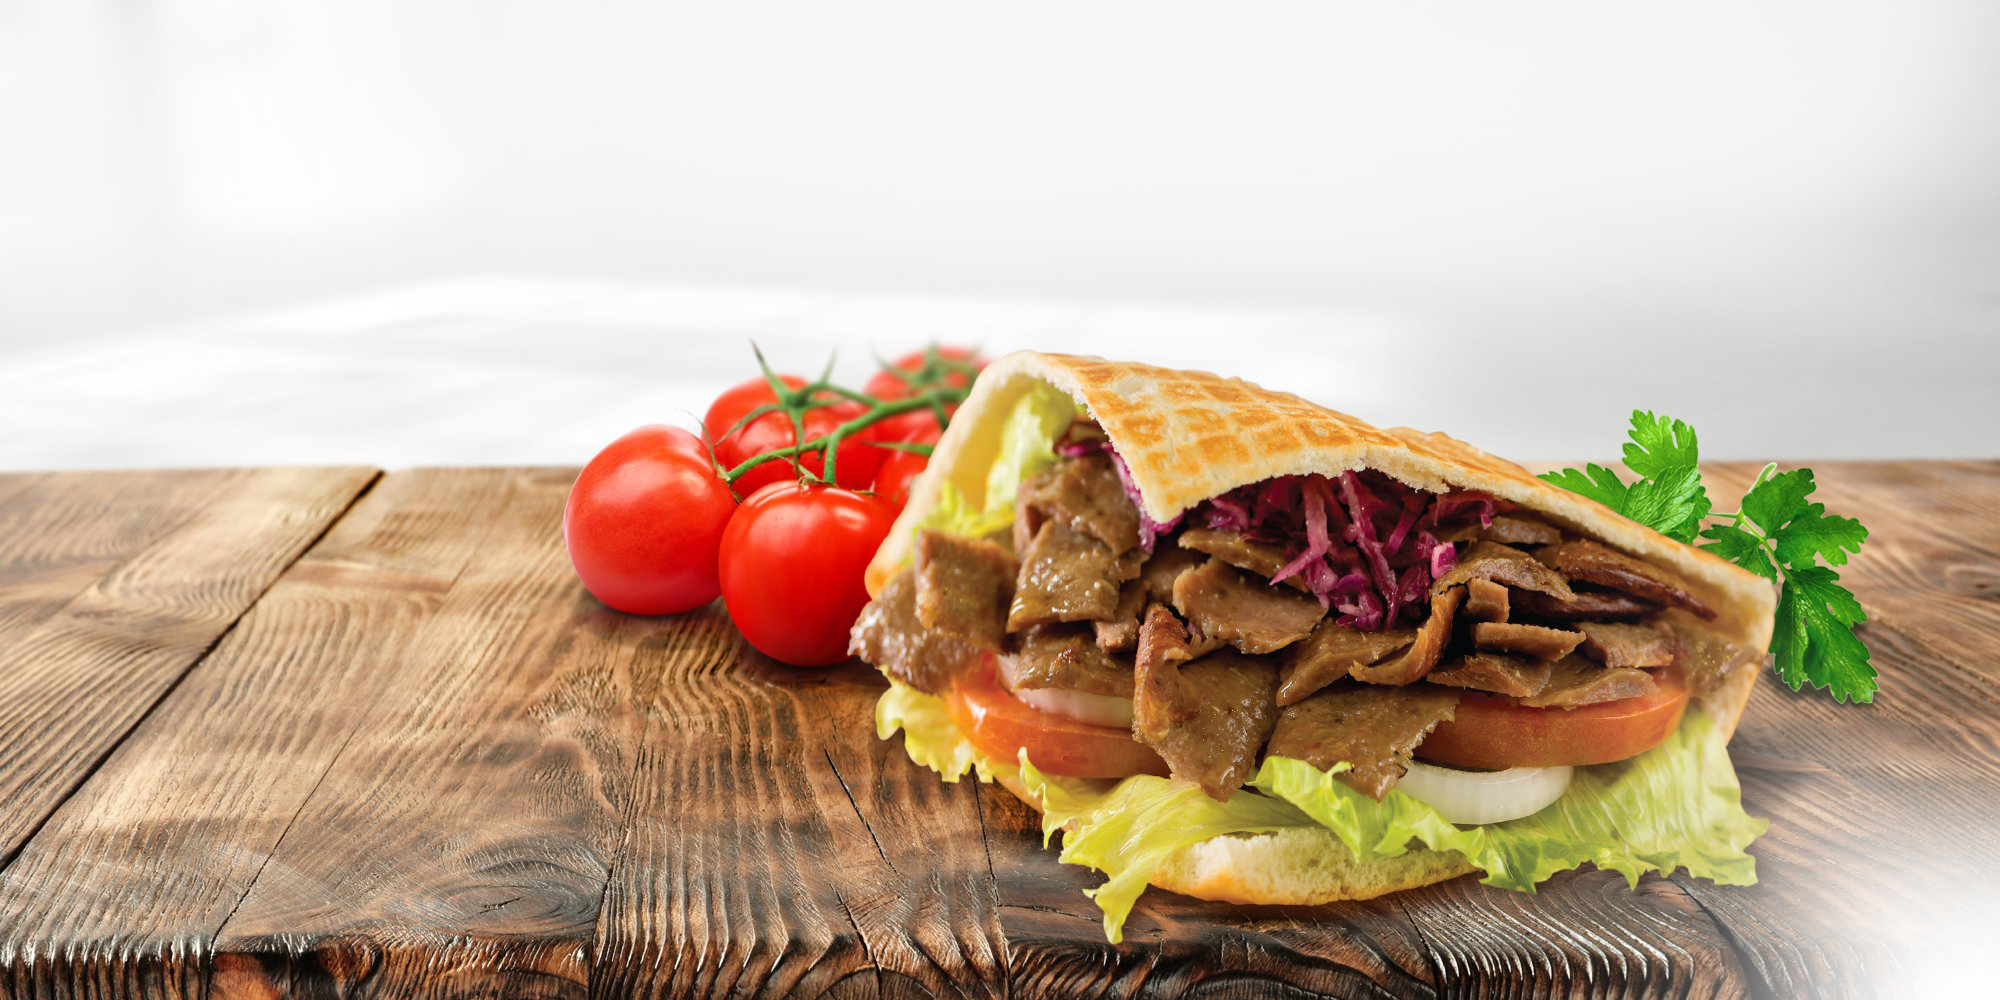 Our Iconic Doner Sandwiches